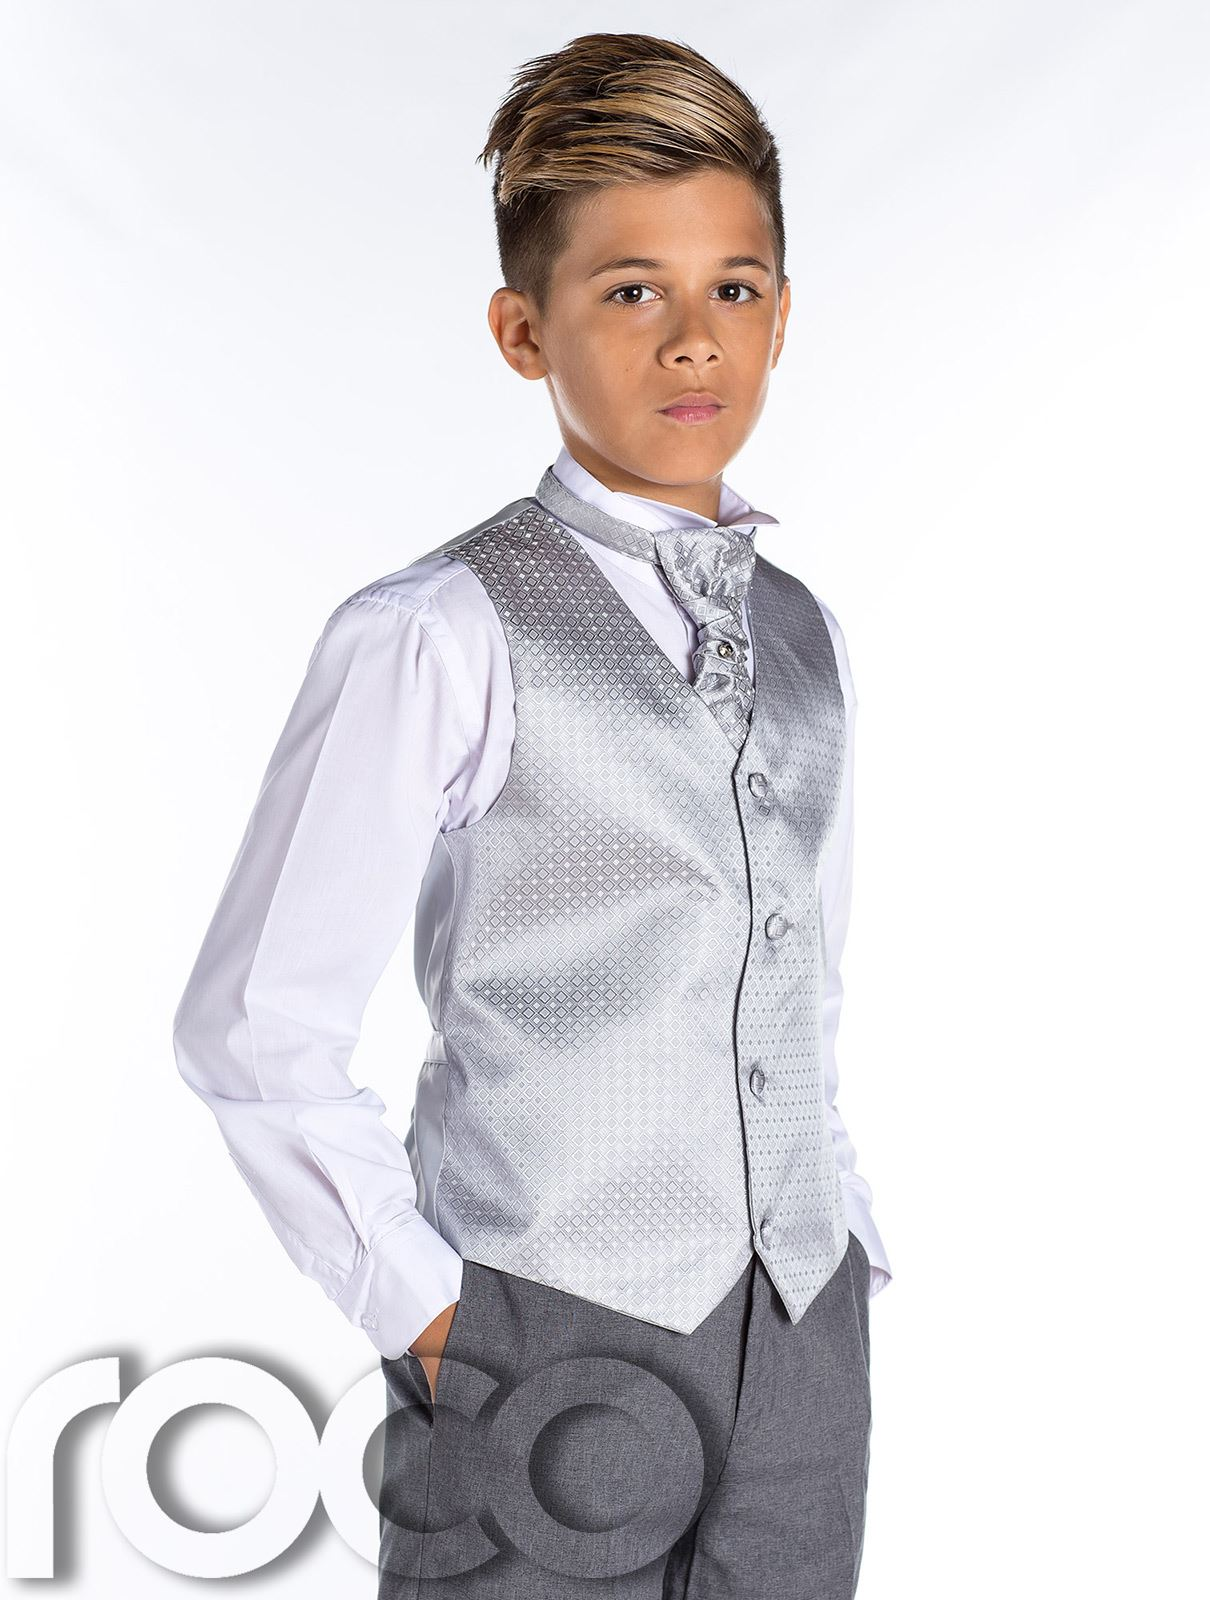 Boys Page boy clothing Page BoyHas your little guy been honoured with the task of being page boy? Whatever the colour scheme is, from classic greys and navys to bold hues, we've got the page boy outfits he needs to match every occasion.